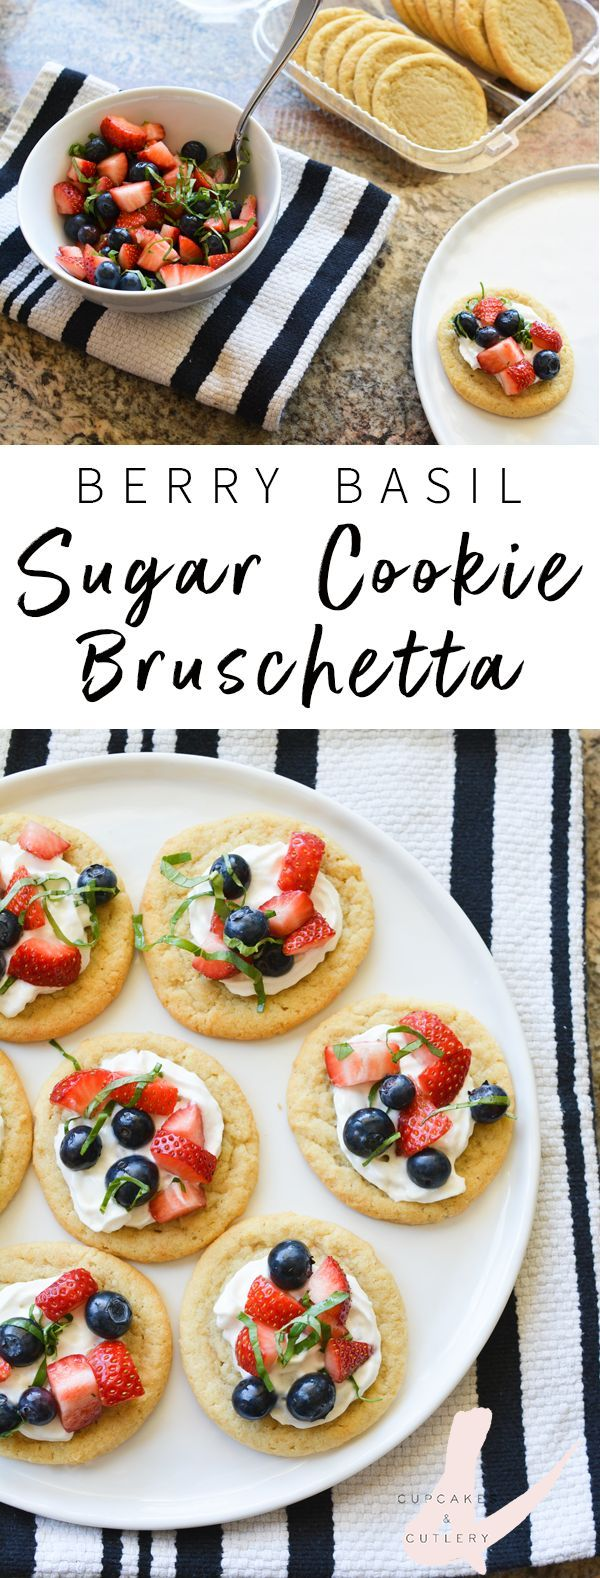 This dessert bruschetta is the perfect quick and easy dessert for a crowd! This simple idea is a fun twist on traditional bruschetta!